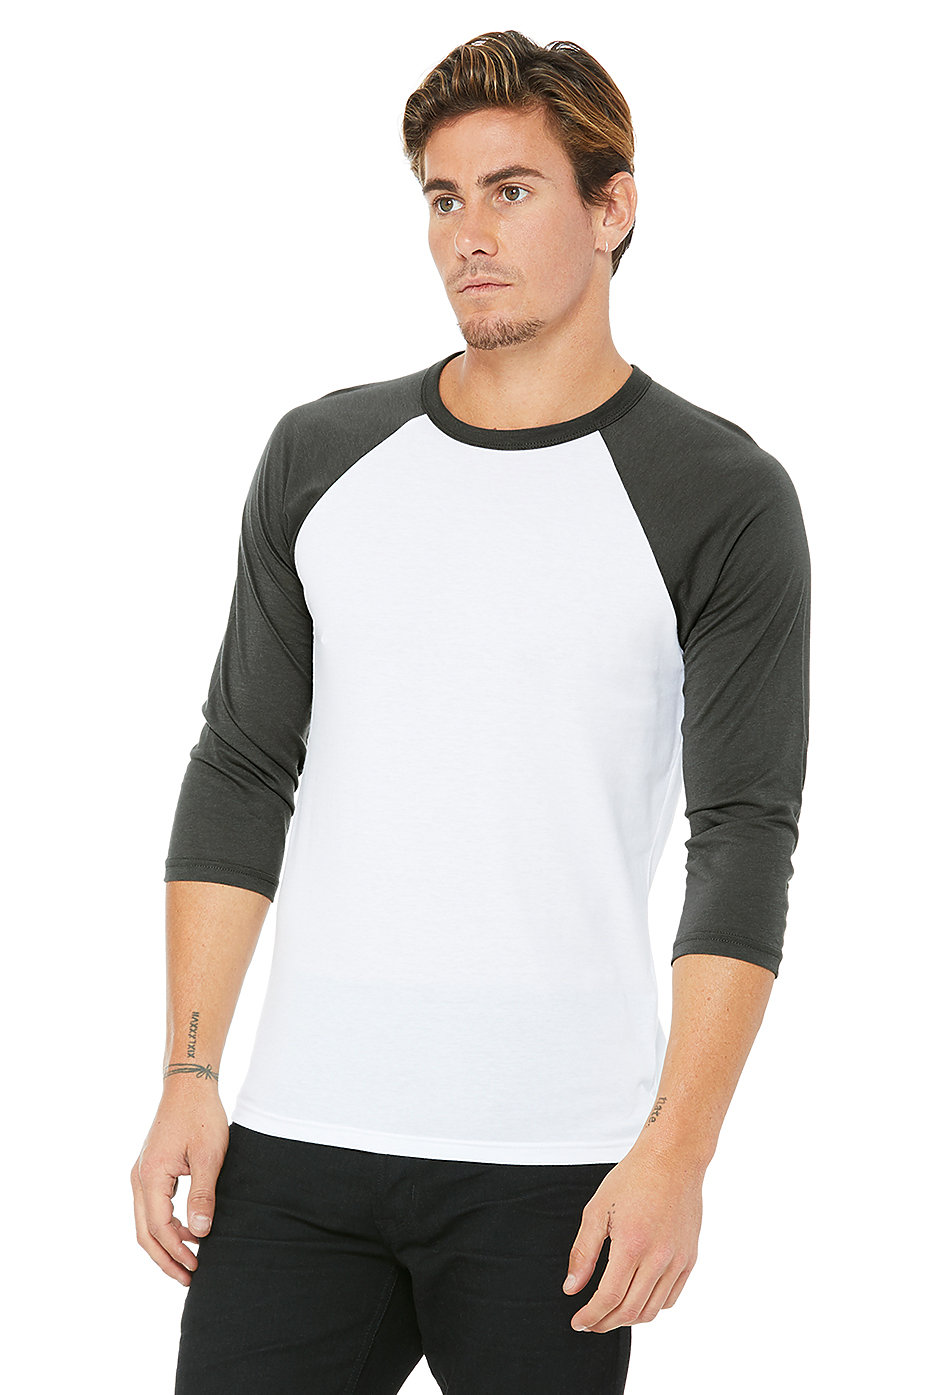 ba9bc41921 Wholesale Baseball Tees | 3 Quarter Sleeve Shirts | Custom Baseball ...